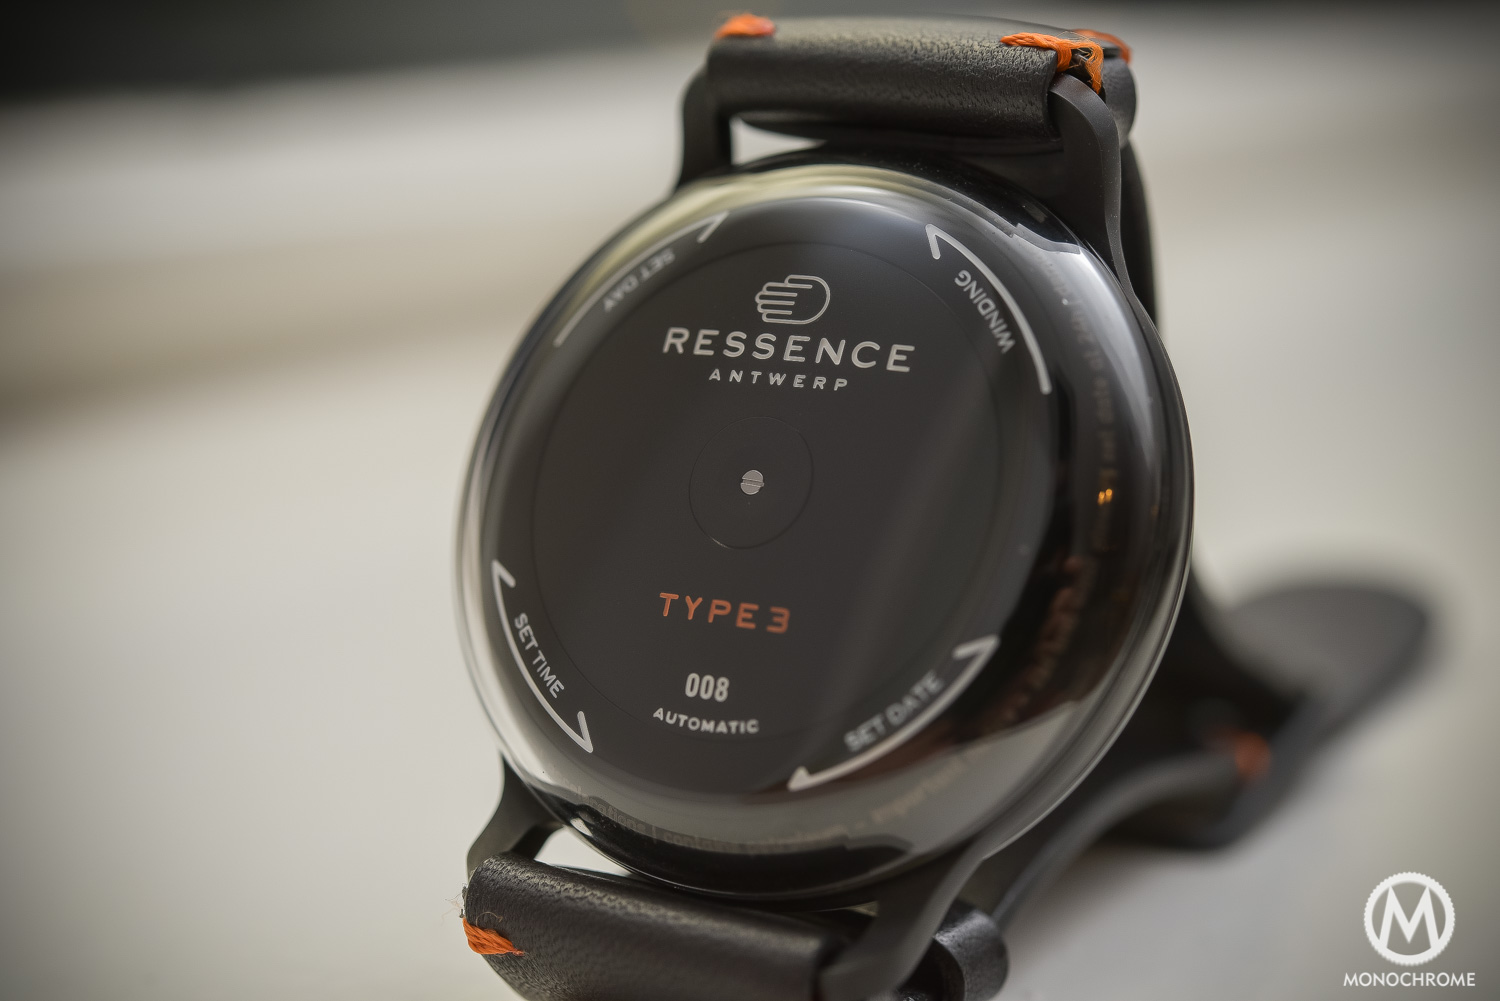 Ressence Type 3BB Black Black - oil Filled watch